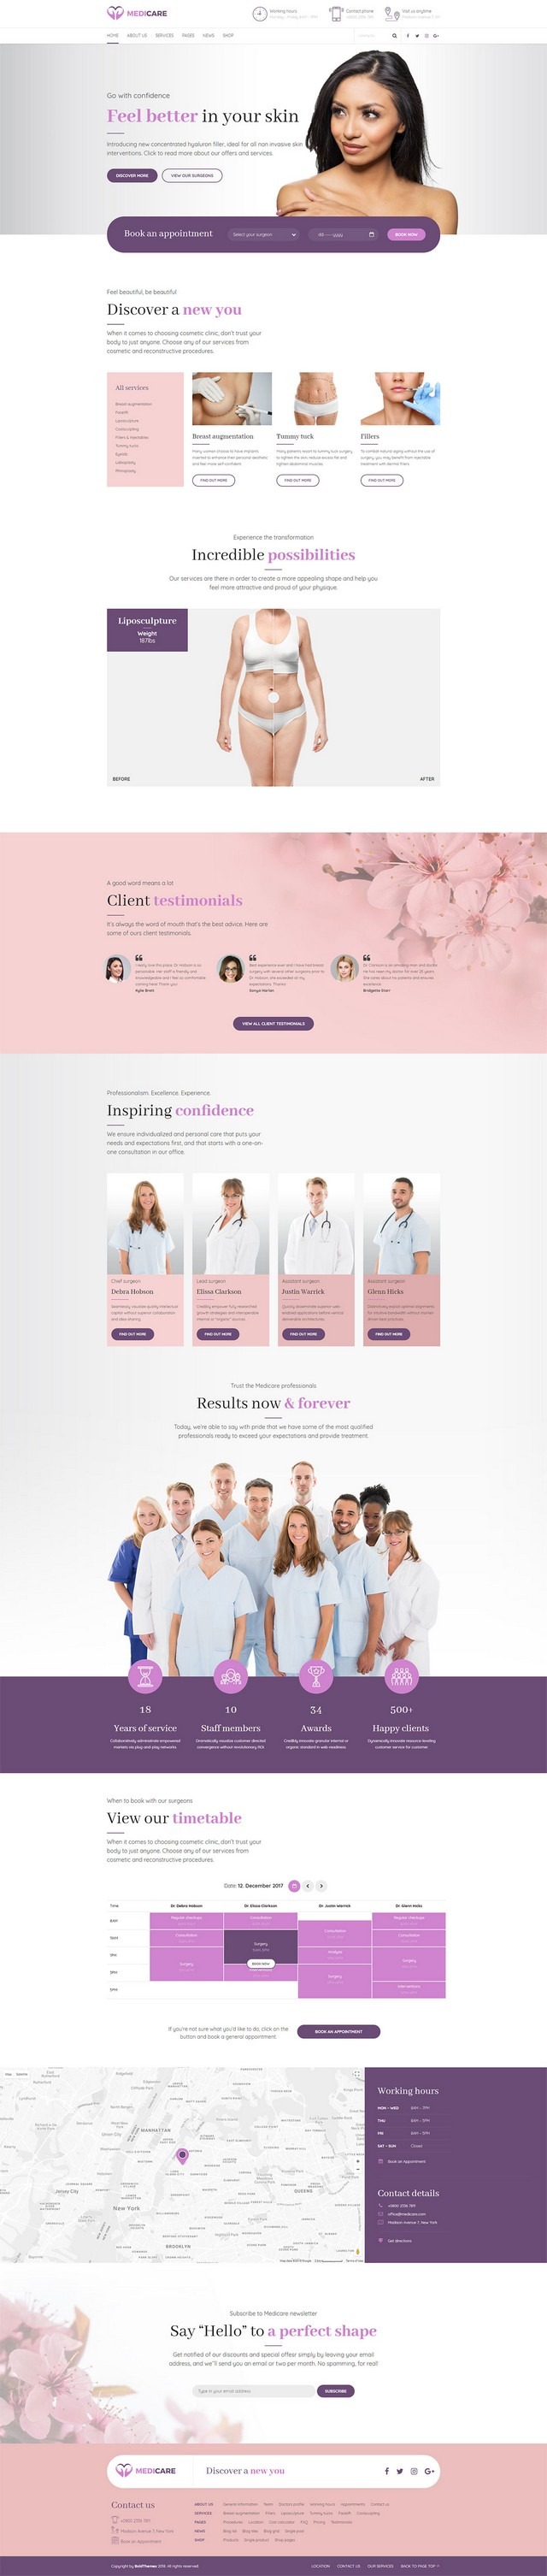 health and medical wordpress theme Medicare homepage layout for cosmetic surgery